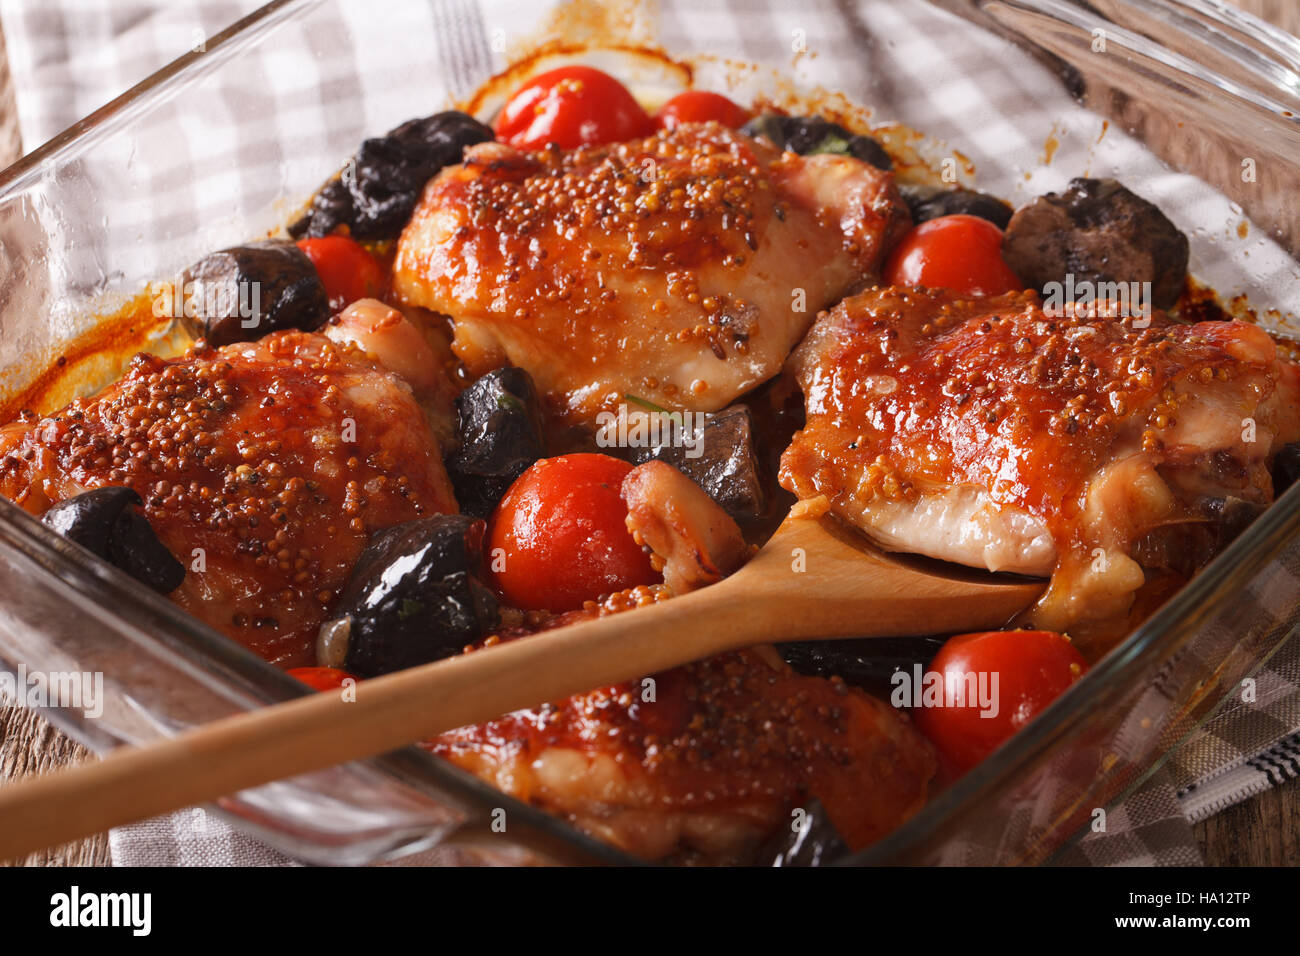 chicken thigh baked with tomatoes and porcini mushrooms close up in baking dish on the table. Horizontal - Stock Image